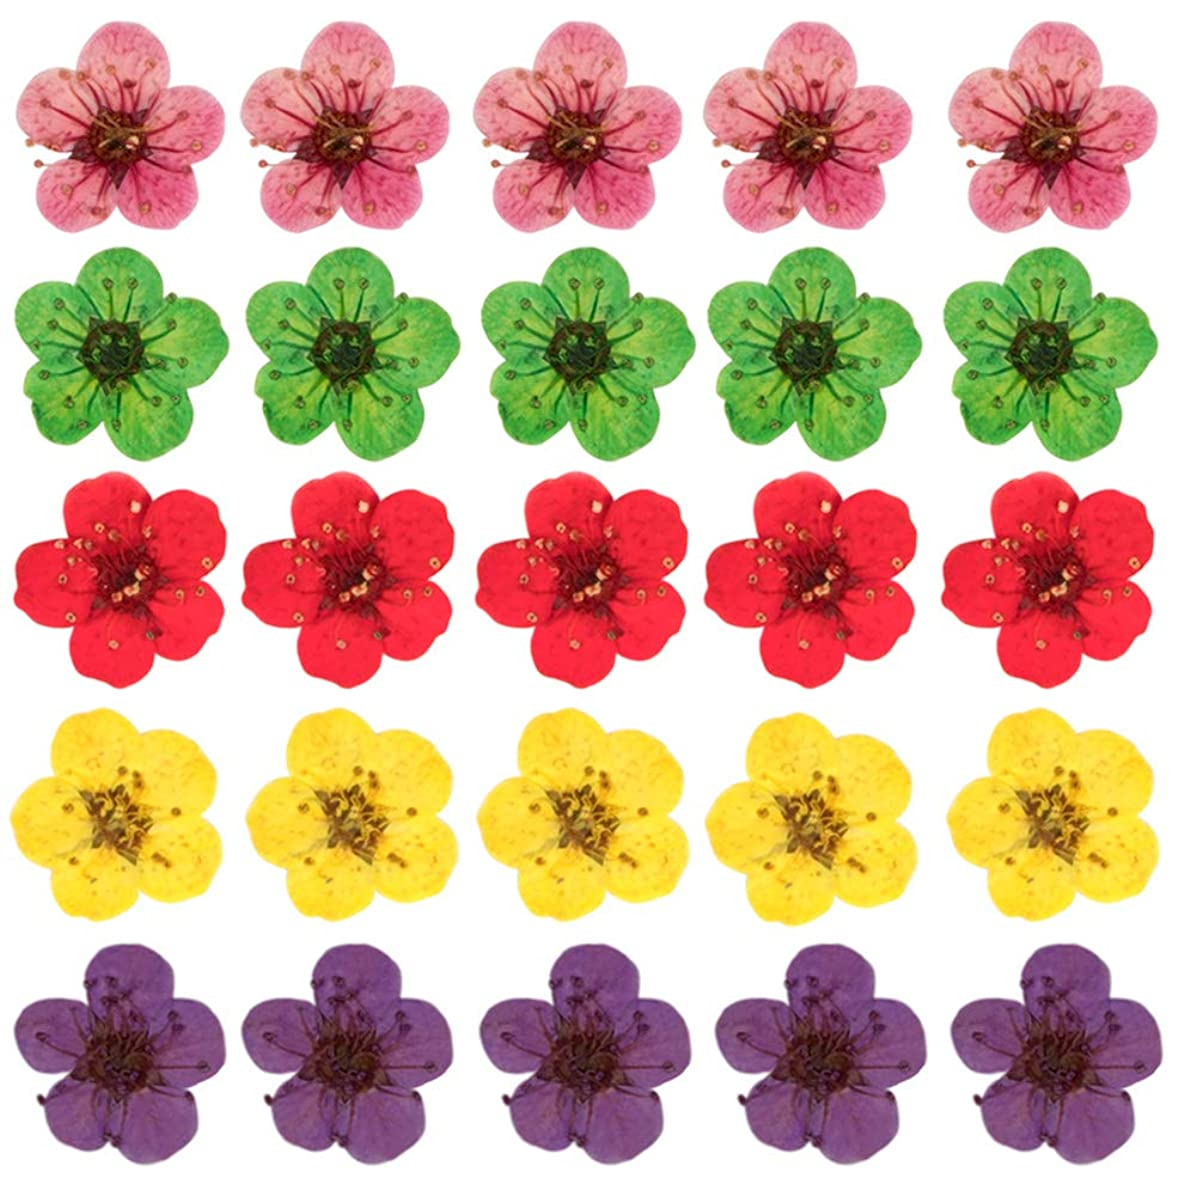 100 PCS Dried Pressed Flowers, 0.6 cm Mini Daffodil Natural Dry Plant Herbarium 3D Nail Stickers for Resin Jewelry Pendant Bracelet Phone Case Scrapbook Nail Art Crafts DIY Making - Random Color